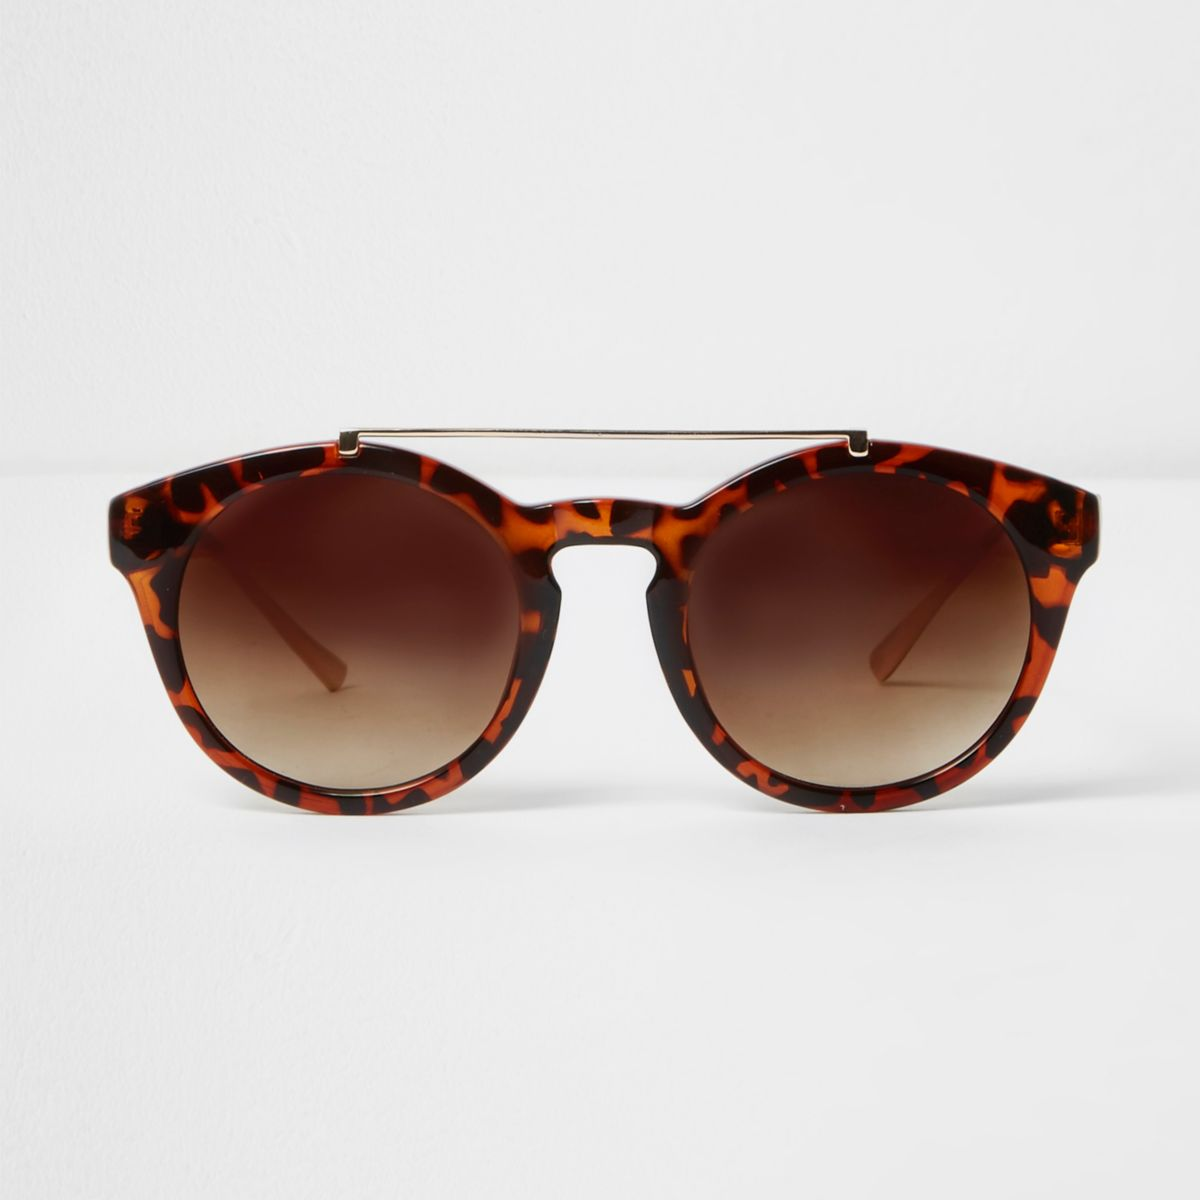 Brown tortoiseshell brow bar round sunglasses